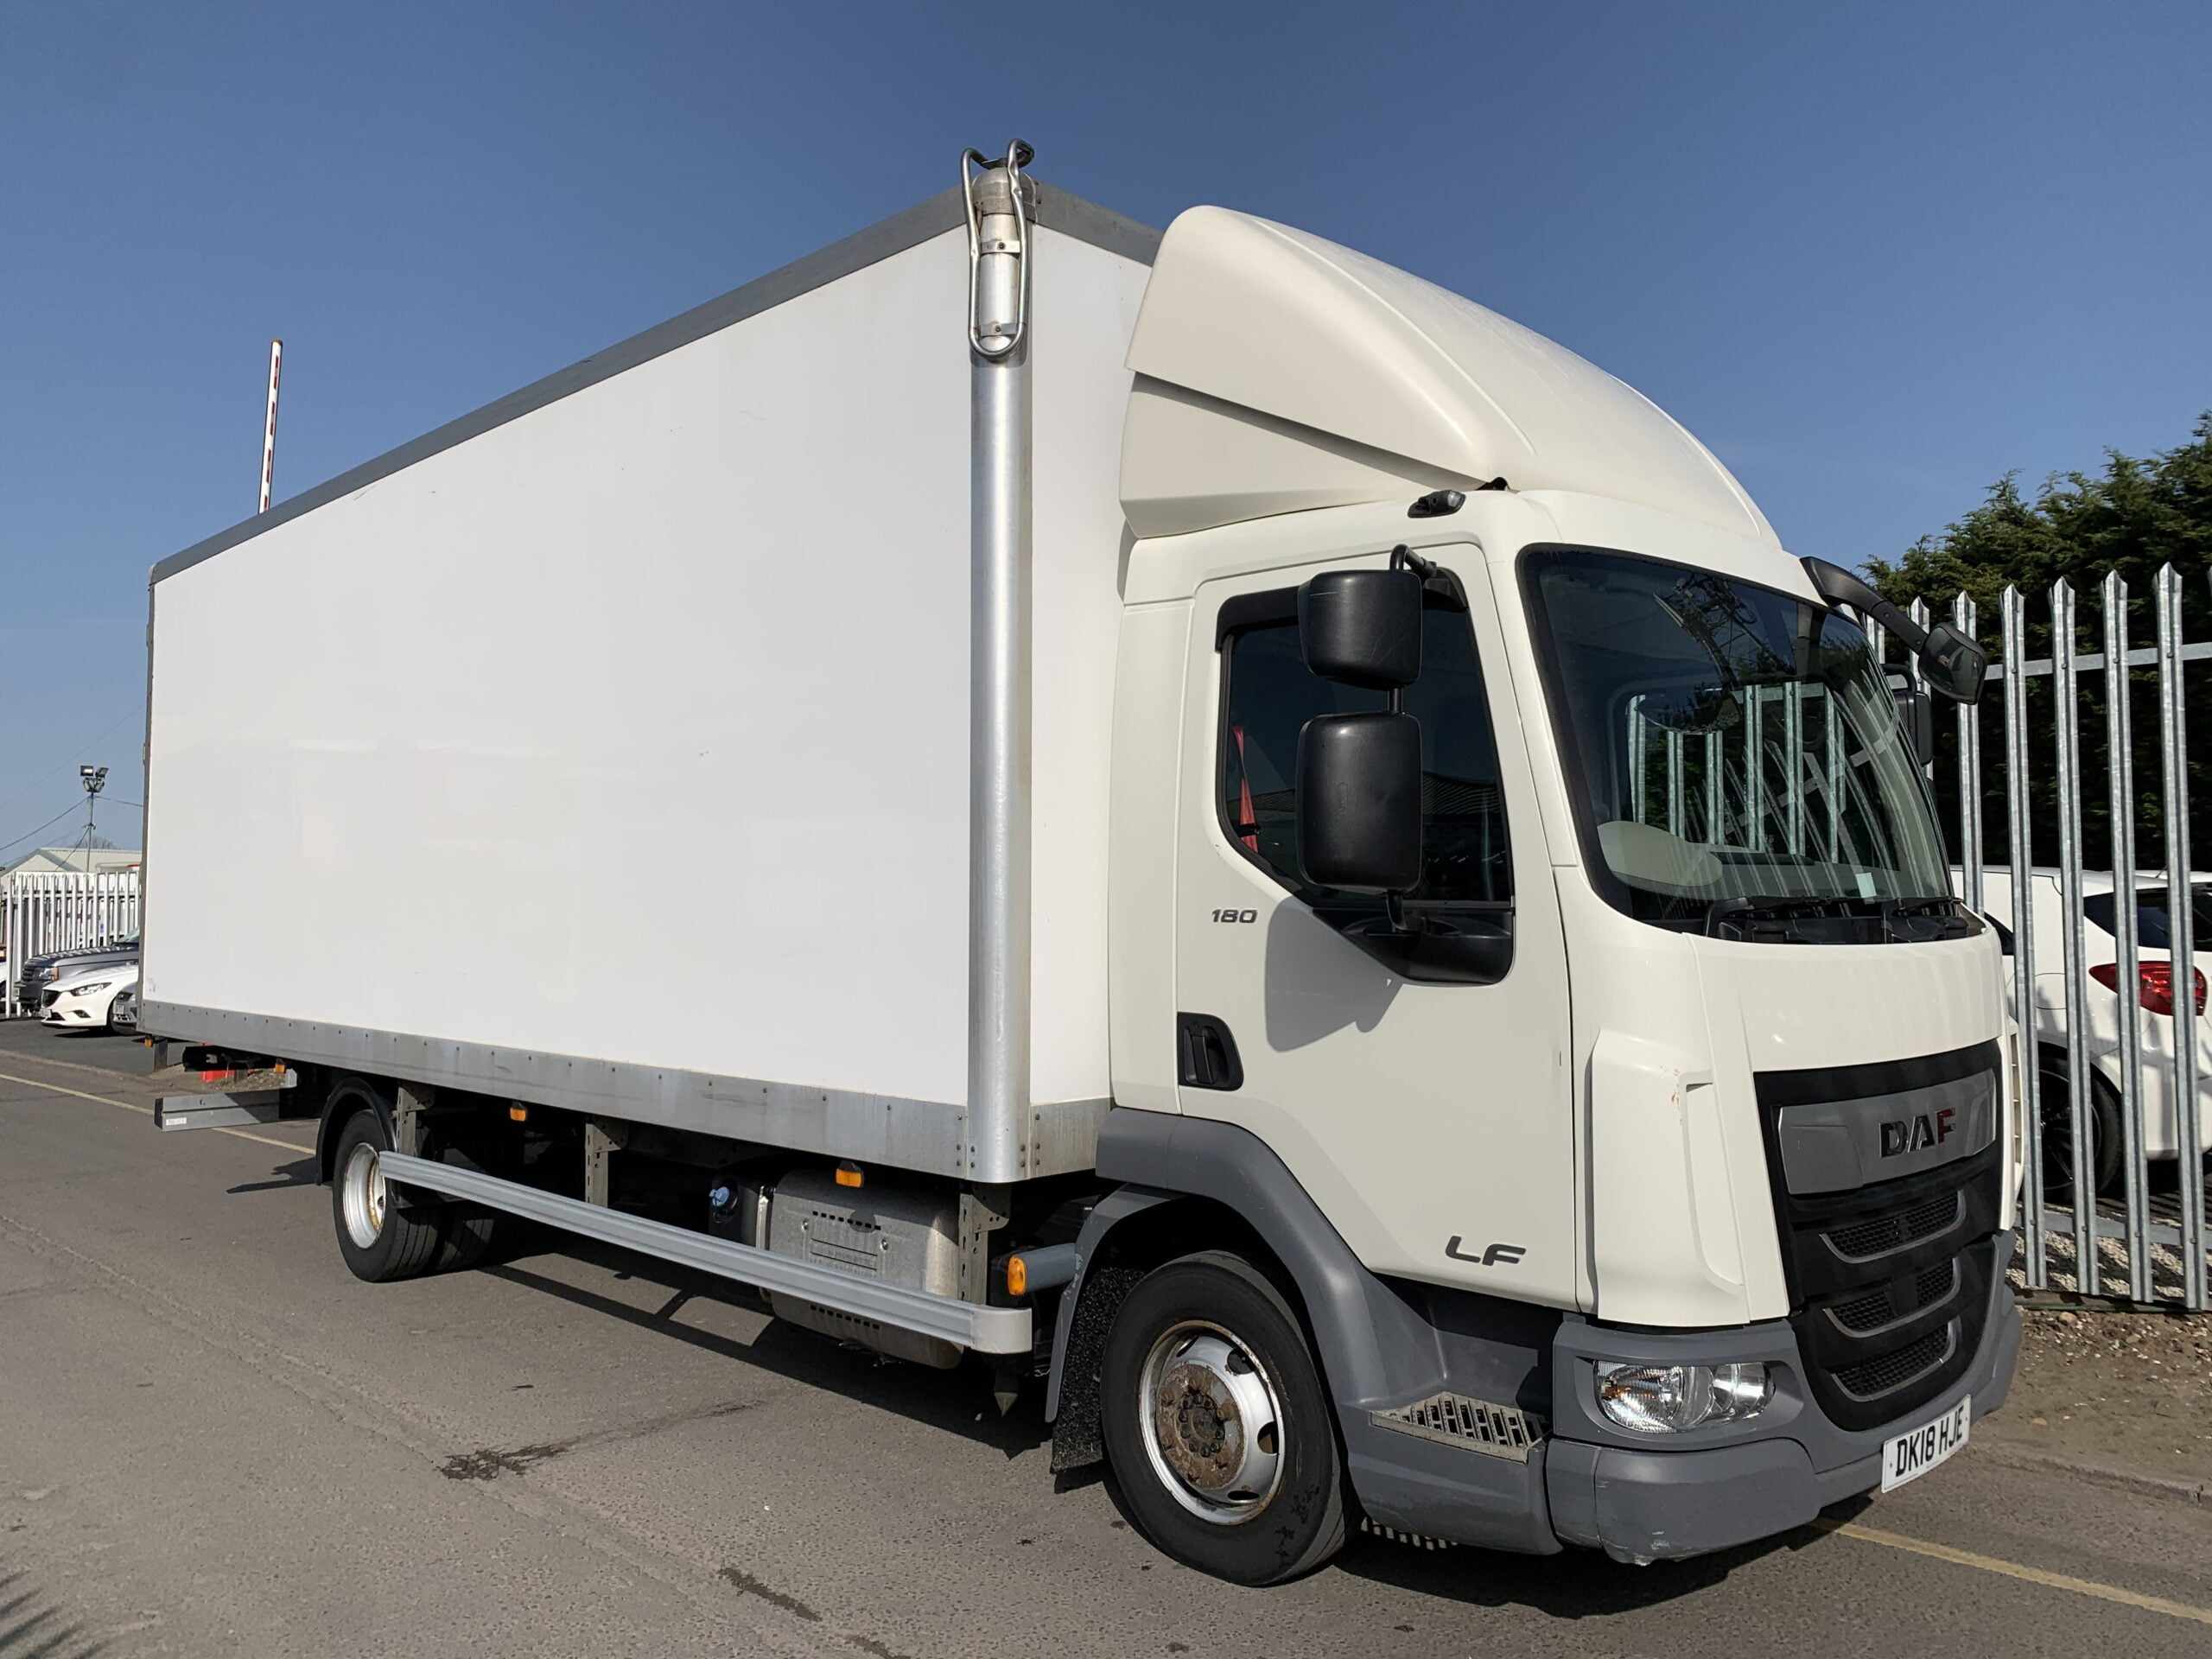 2018 DAF LF, 7.5T, Euro 6, 180bhp, 24ft Body, Wisa Deck Floor, Barn Doors, Day Cab, Automatic Gearbox, Low Mileage, Choice & Warranty Available.